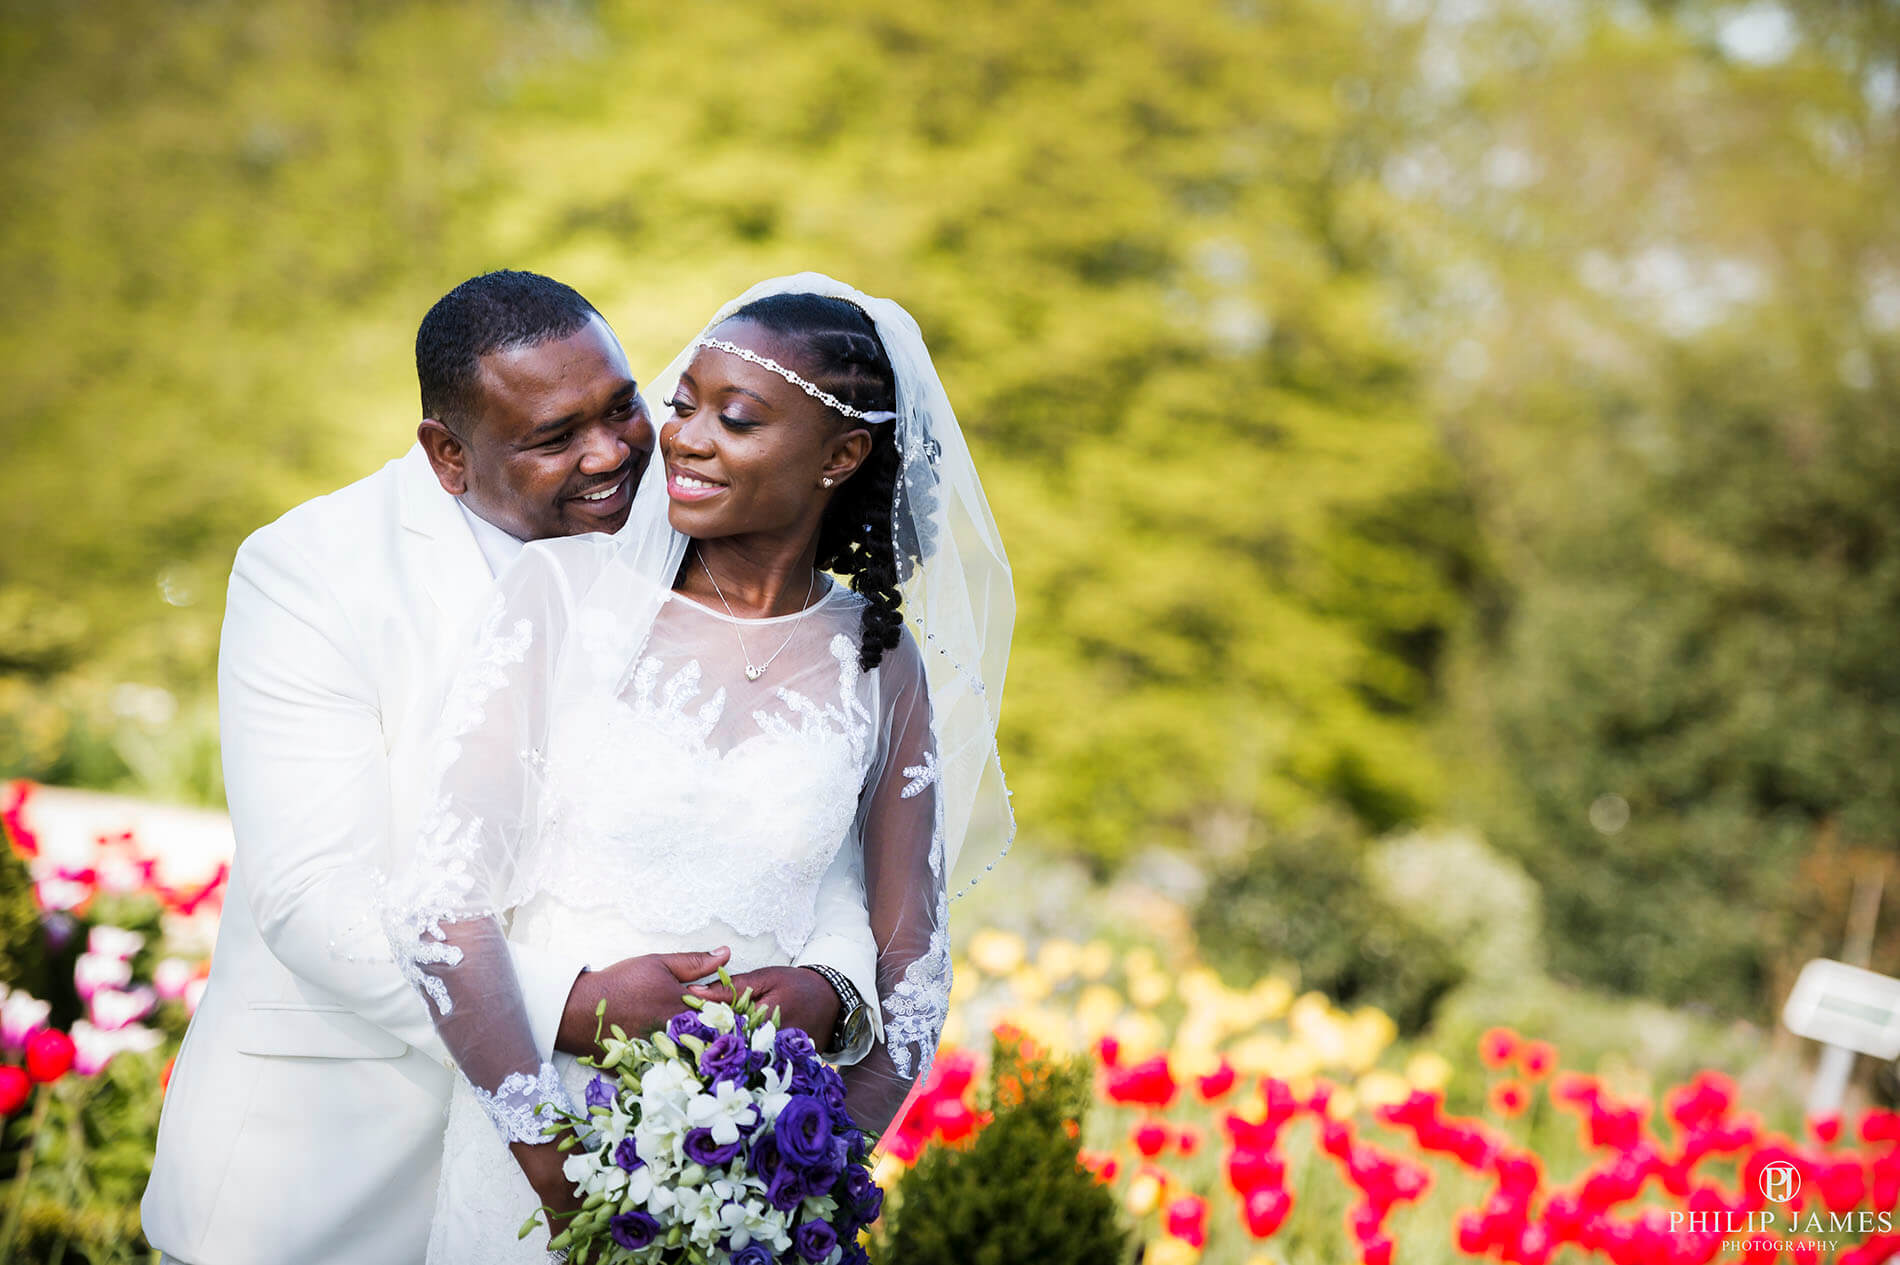 Jamaican Wedding Photographer Birmingham - Philip James covers the West Midlands, Warwickshire and all over the UK. Wedding photography Birmingham is my passion